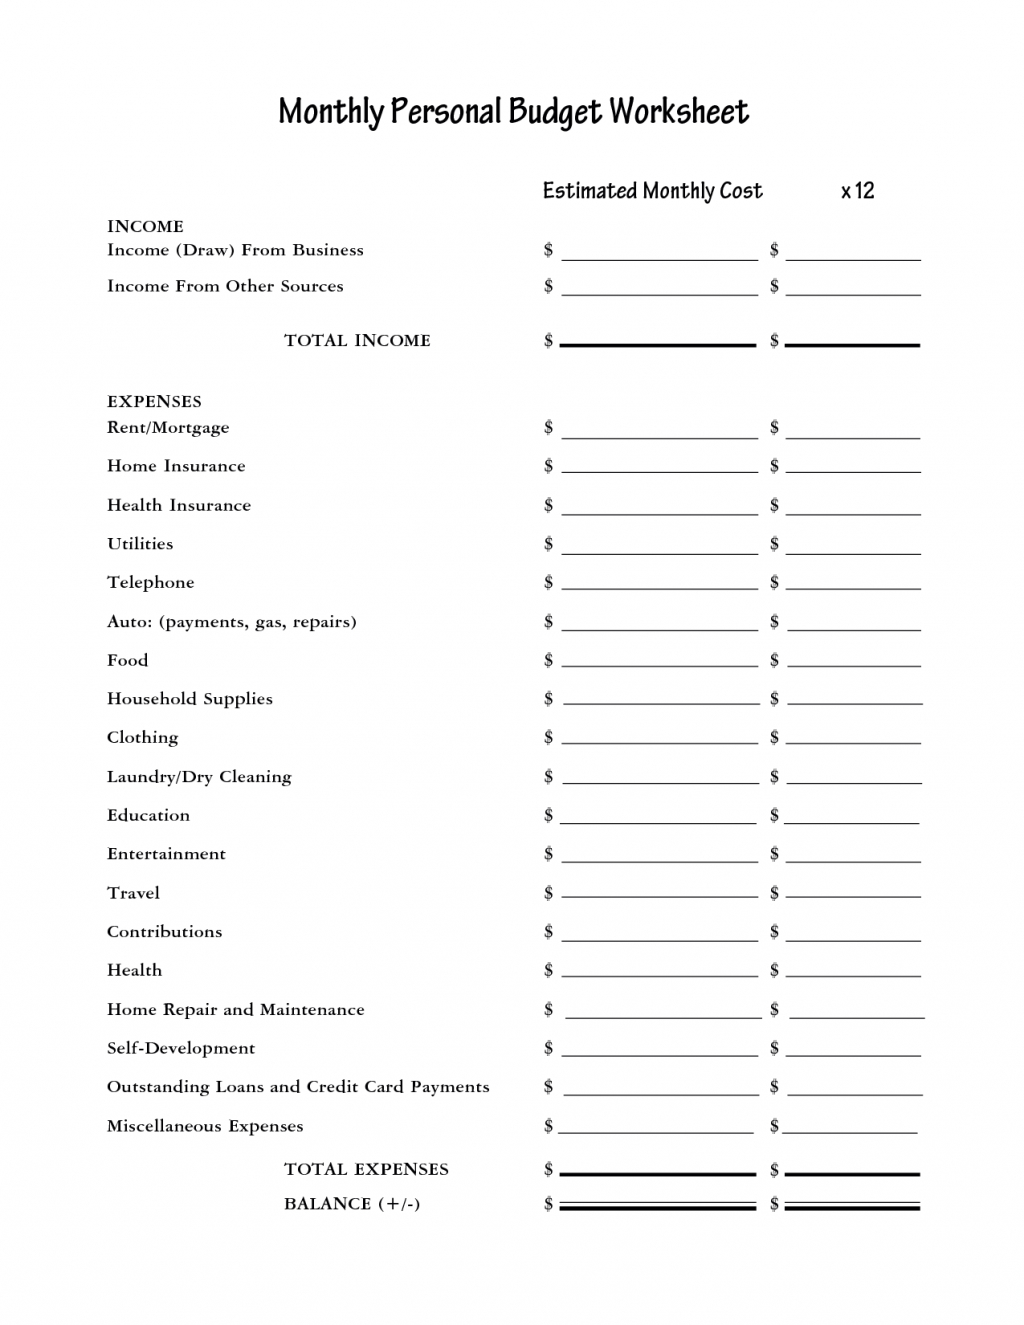 Personal Budget Spreadsheet Sample Template Printable Uk Reddit To Sample Personal Budget Spreadsheet